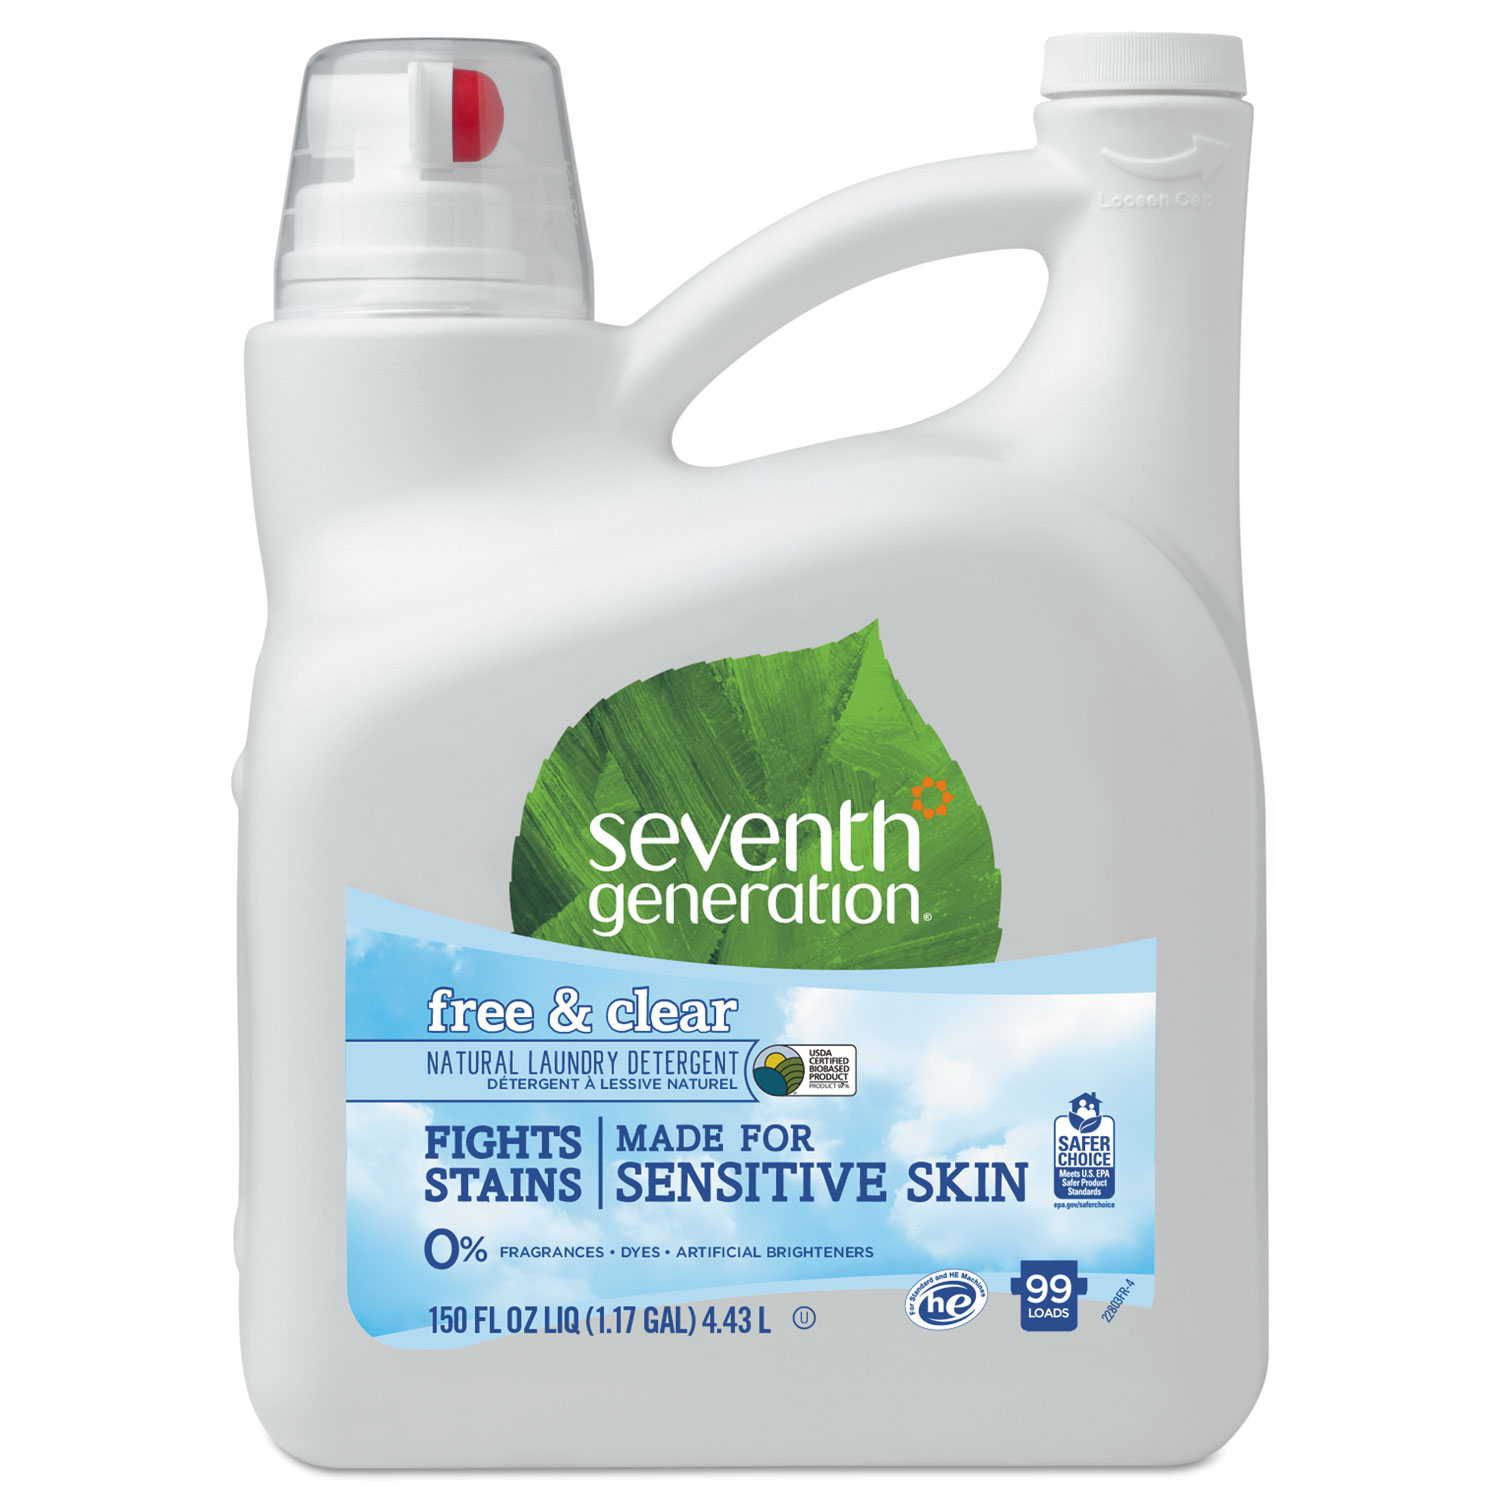 Seventh Generation Natural 2X Concentrate Liquid Laundry Detergent - Free and Clear, 150 oz, 4/Case